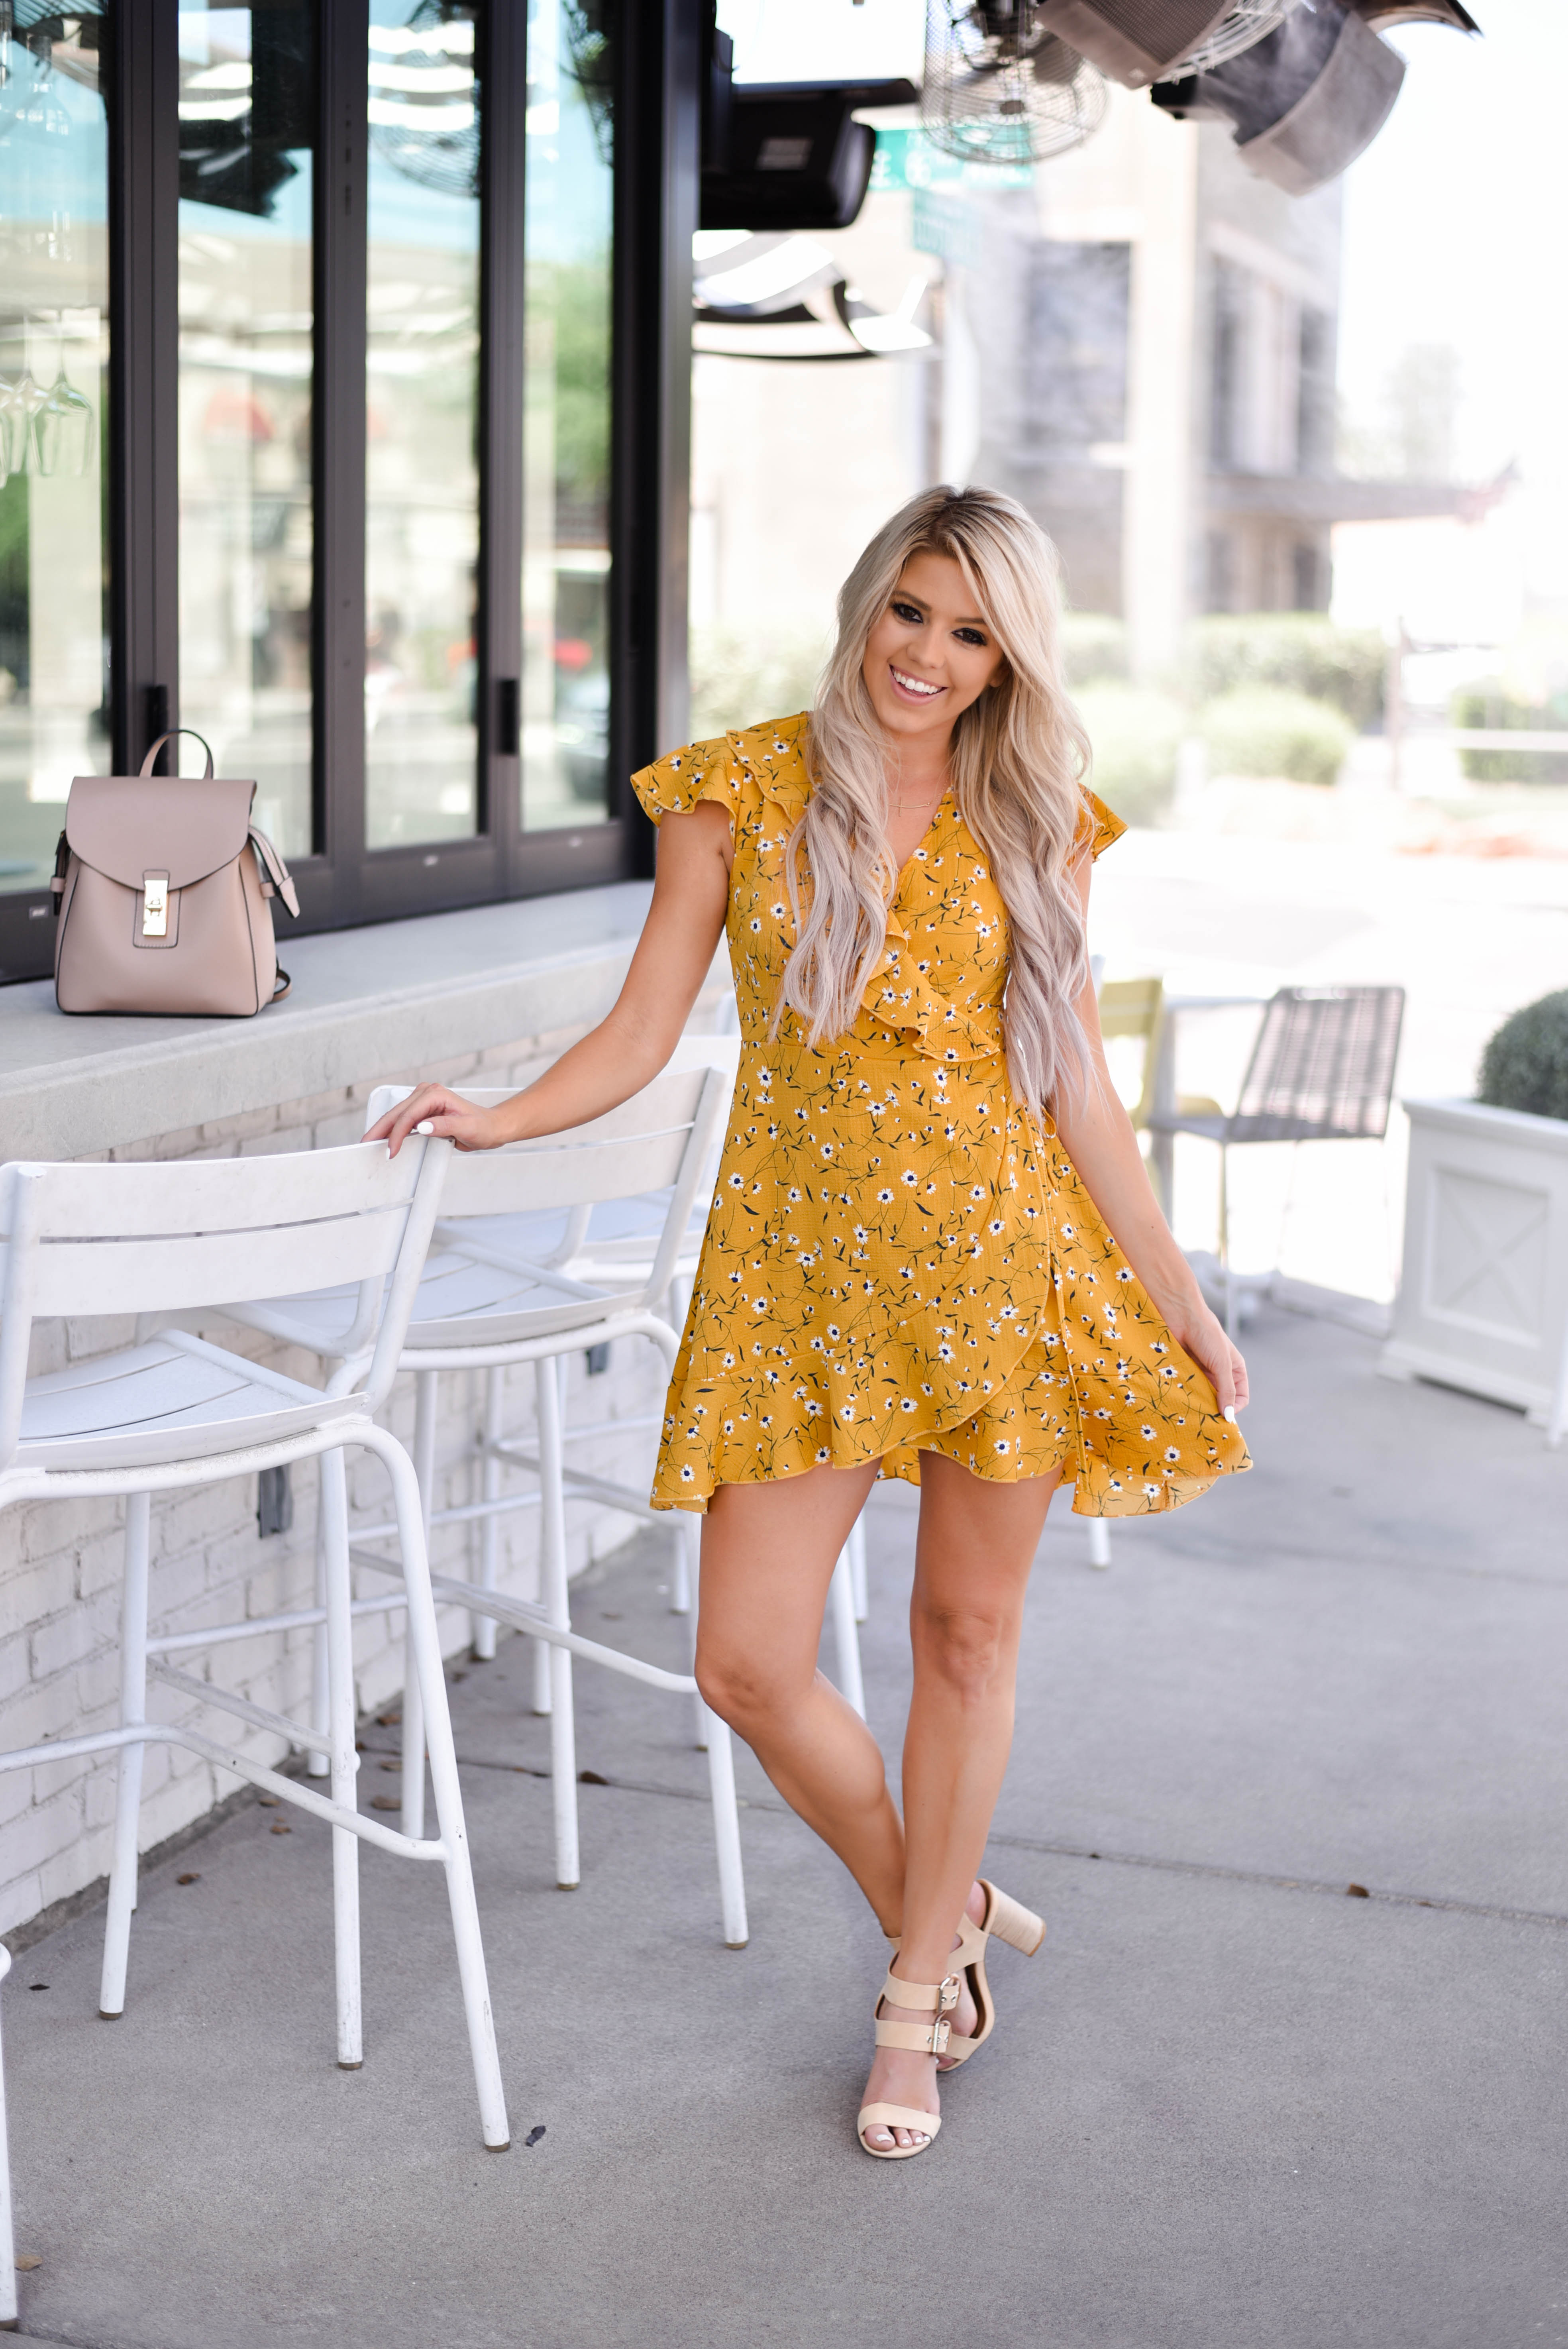 Erin Elizabeth of Wink and a Twirl shares the cutest yellow dress from Chicwish